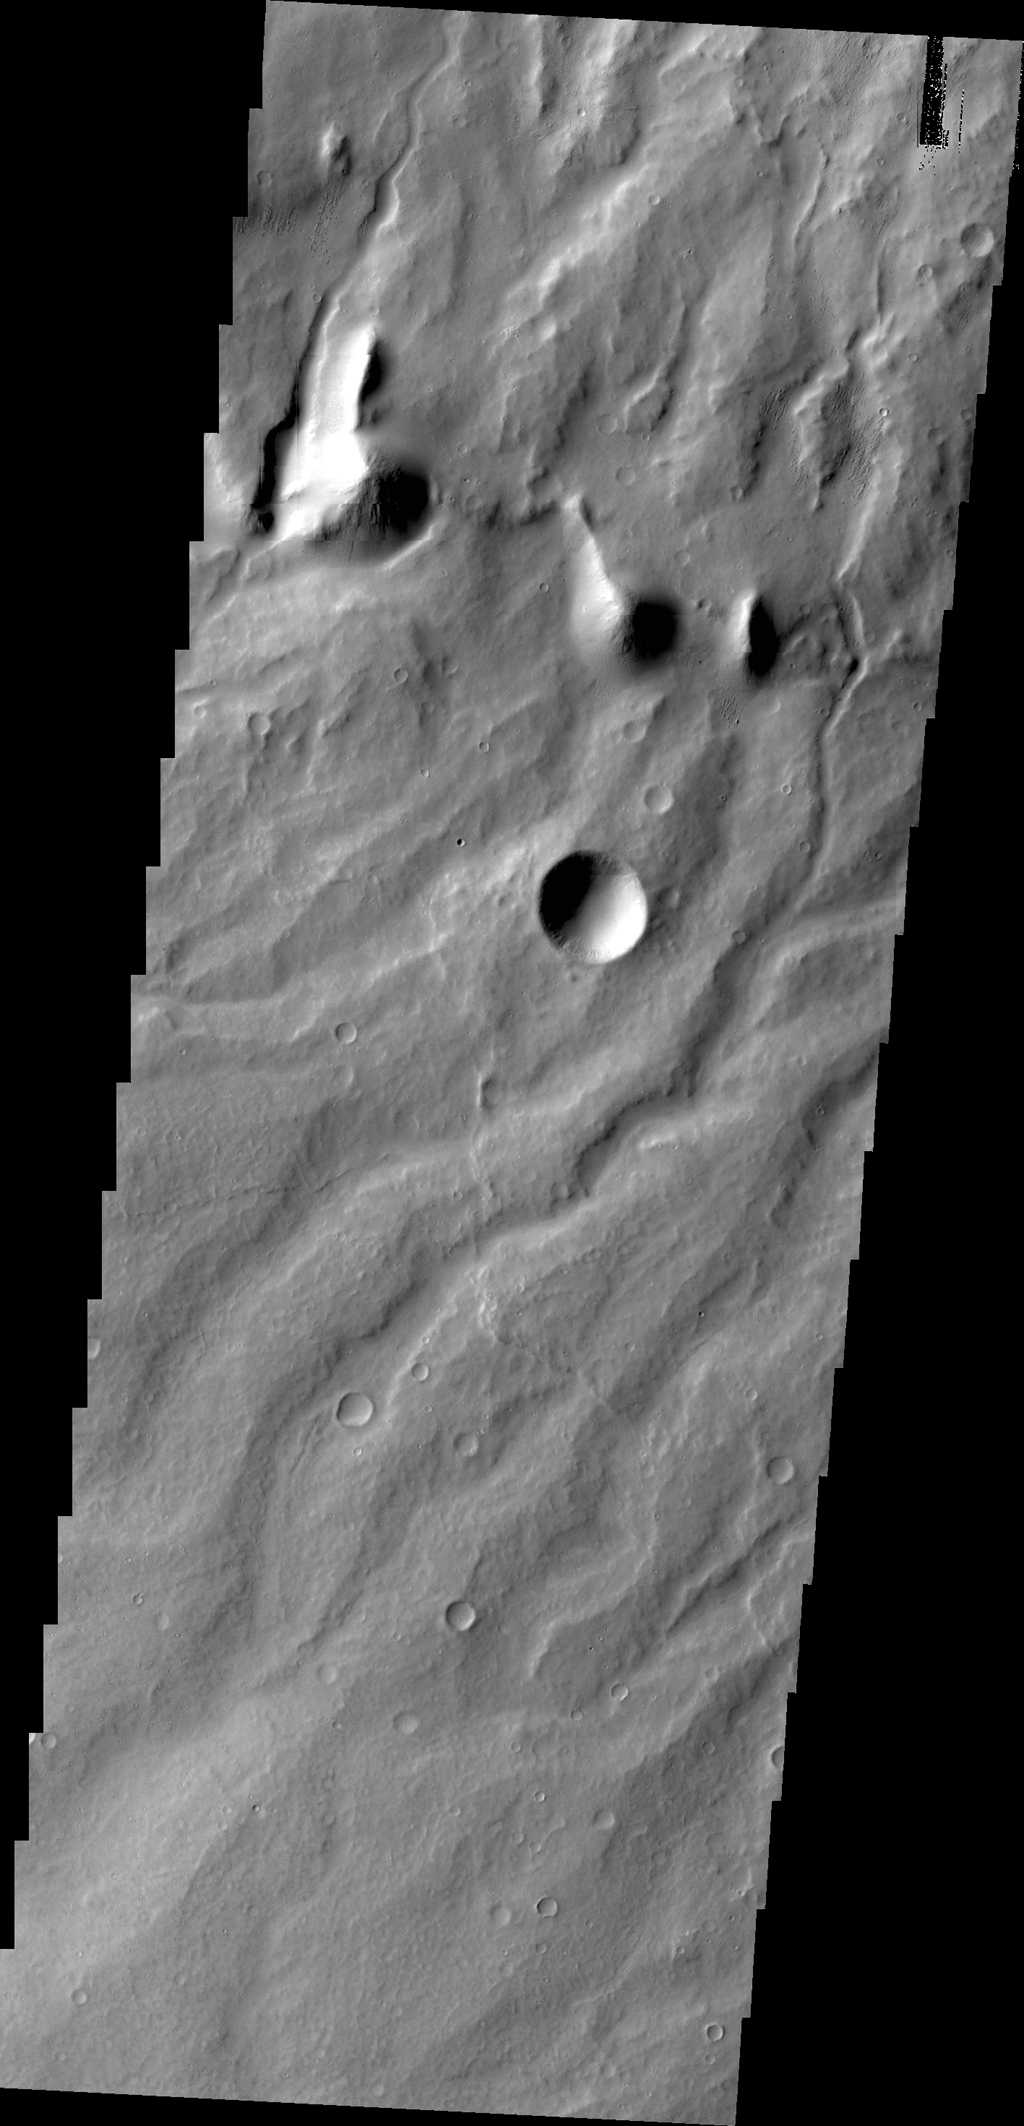 The parallel channels seen in this image NASA's 2001 Mars Odyssey spacecraft captured by are dissecting the flanks of Apollinaris Mons, a large volcano north of Gusev Crater.